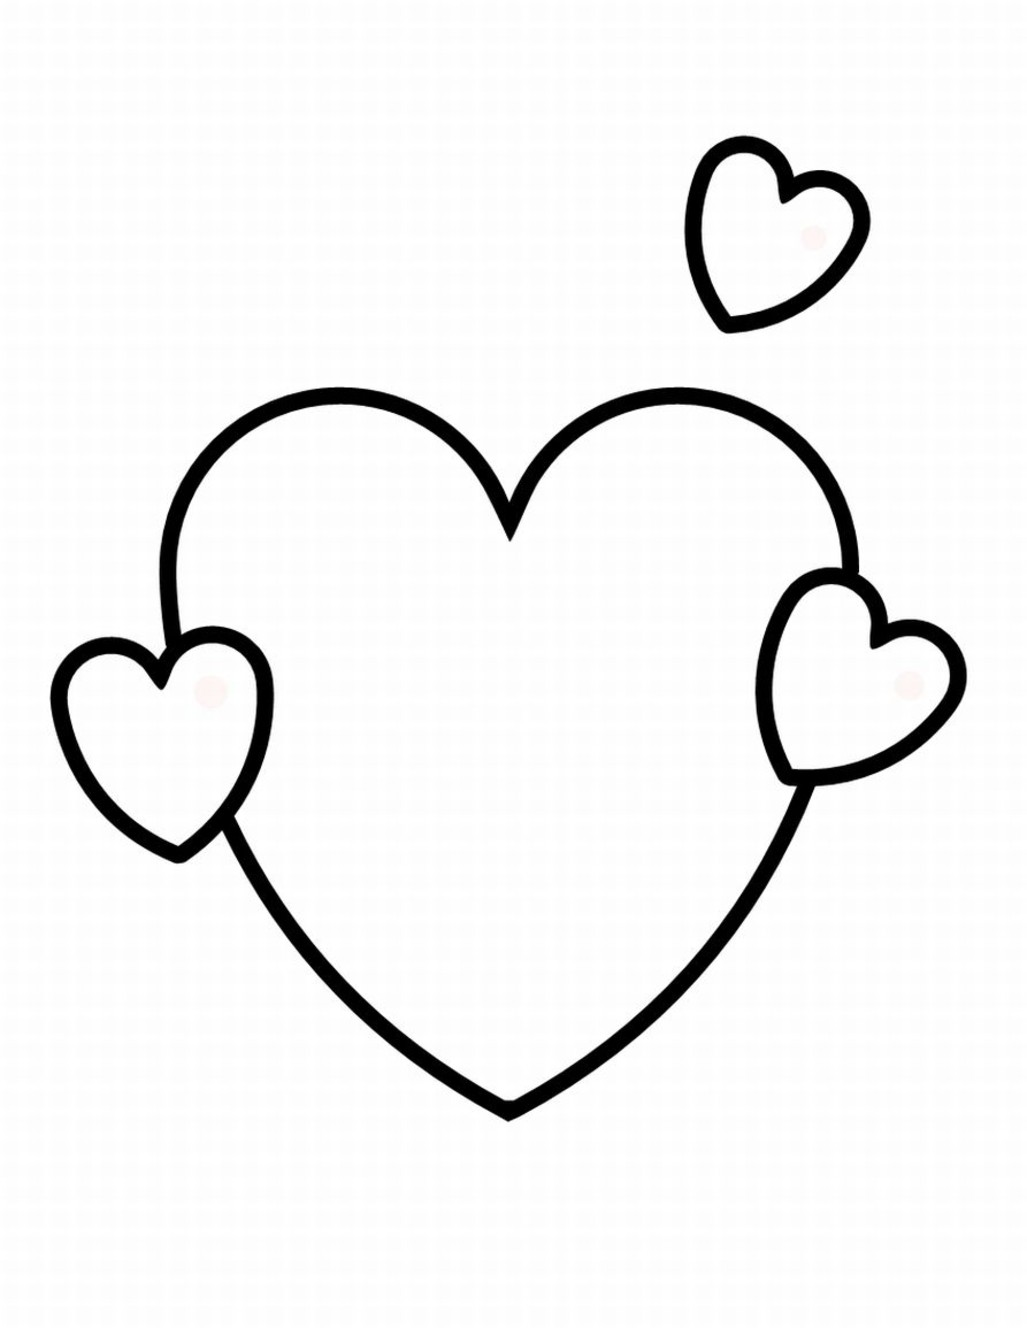 valentines heart coloring pages valentine coloring pages best coloring pages for kids coloring valentines pages heart